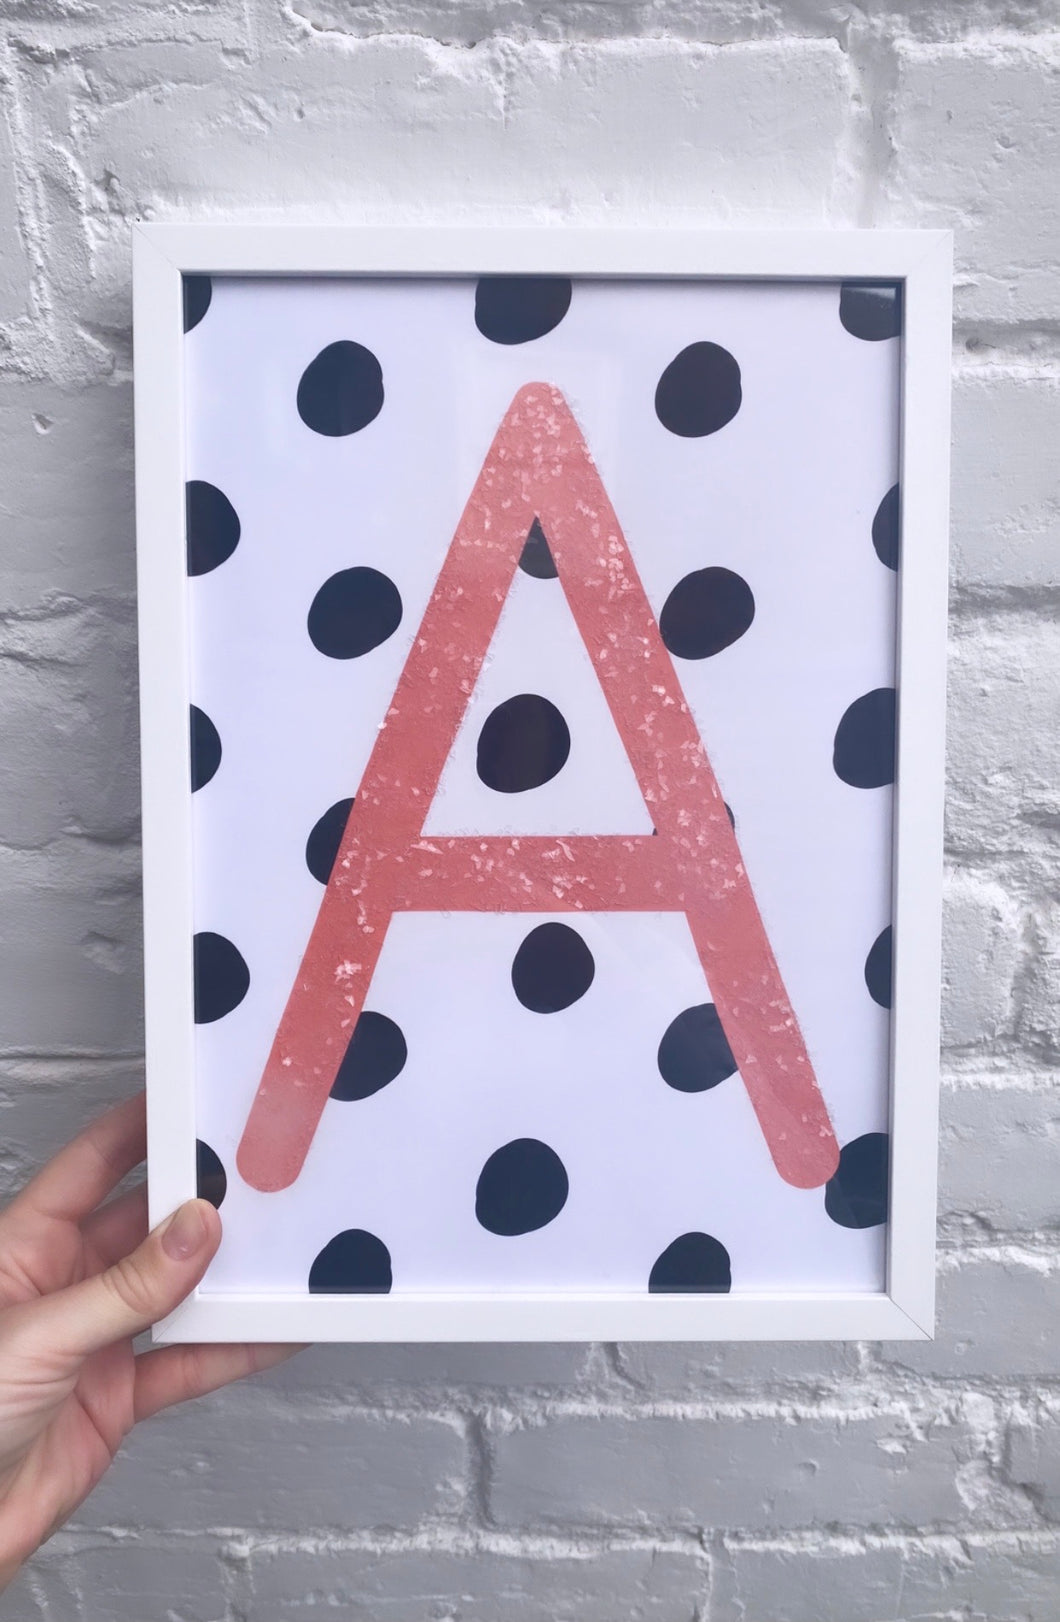 Polka dot dusted initial print